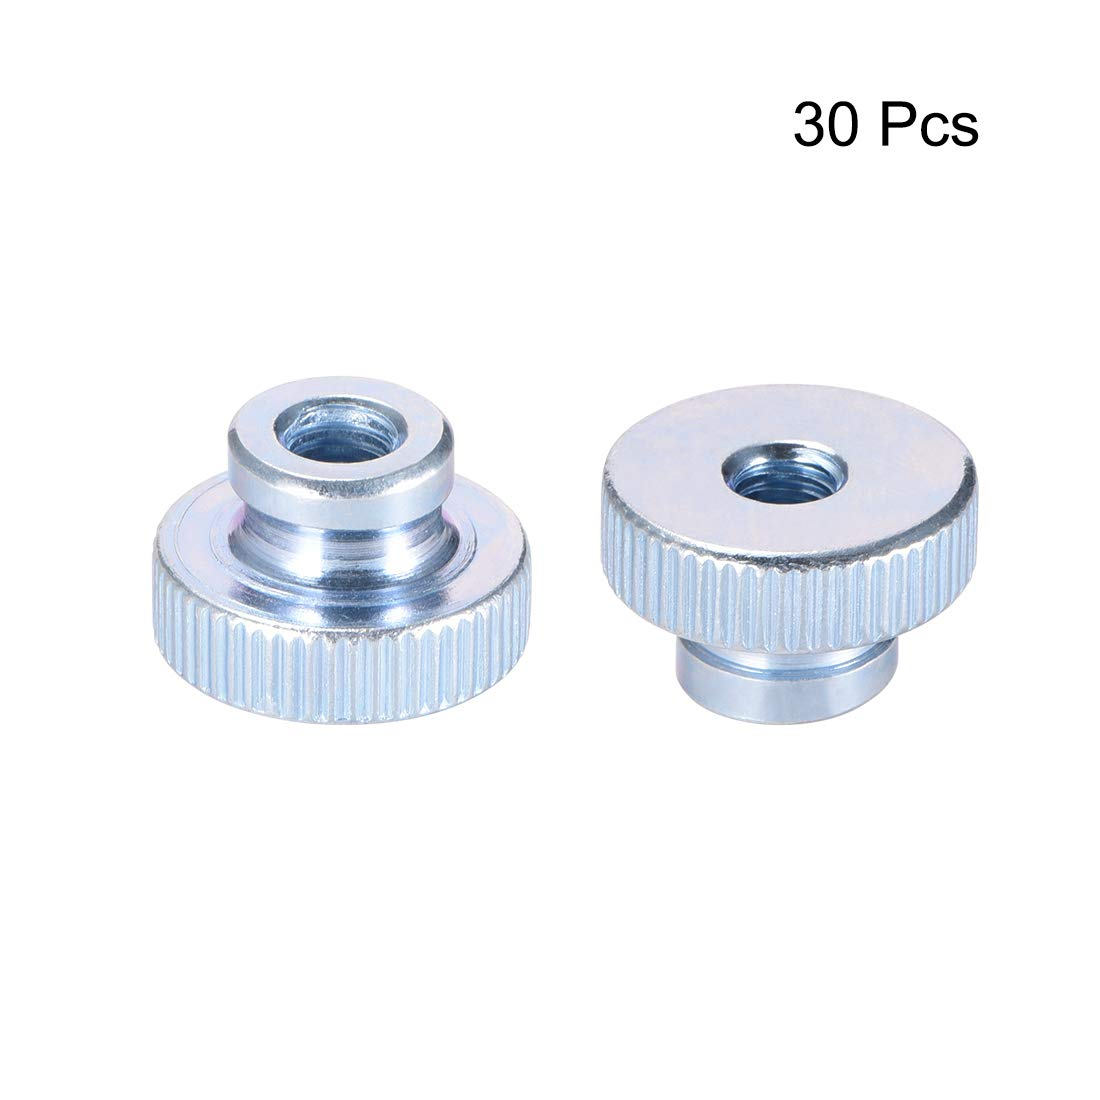 Pack of 10 Zinc Plating uxcell Knurled Thumb Nuts M5 Round Knobs with Collar